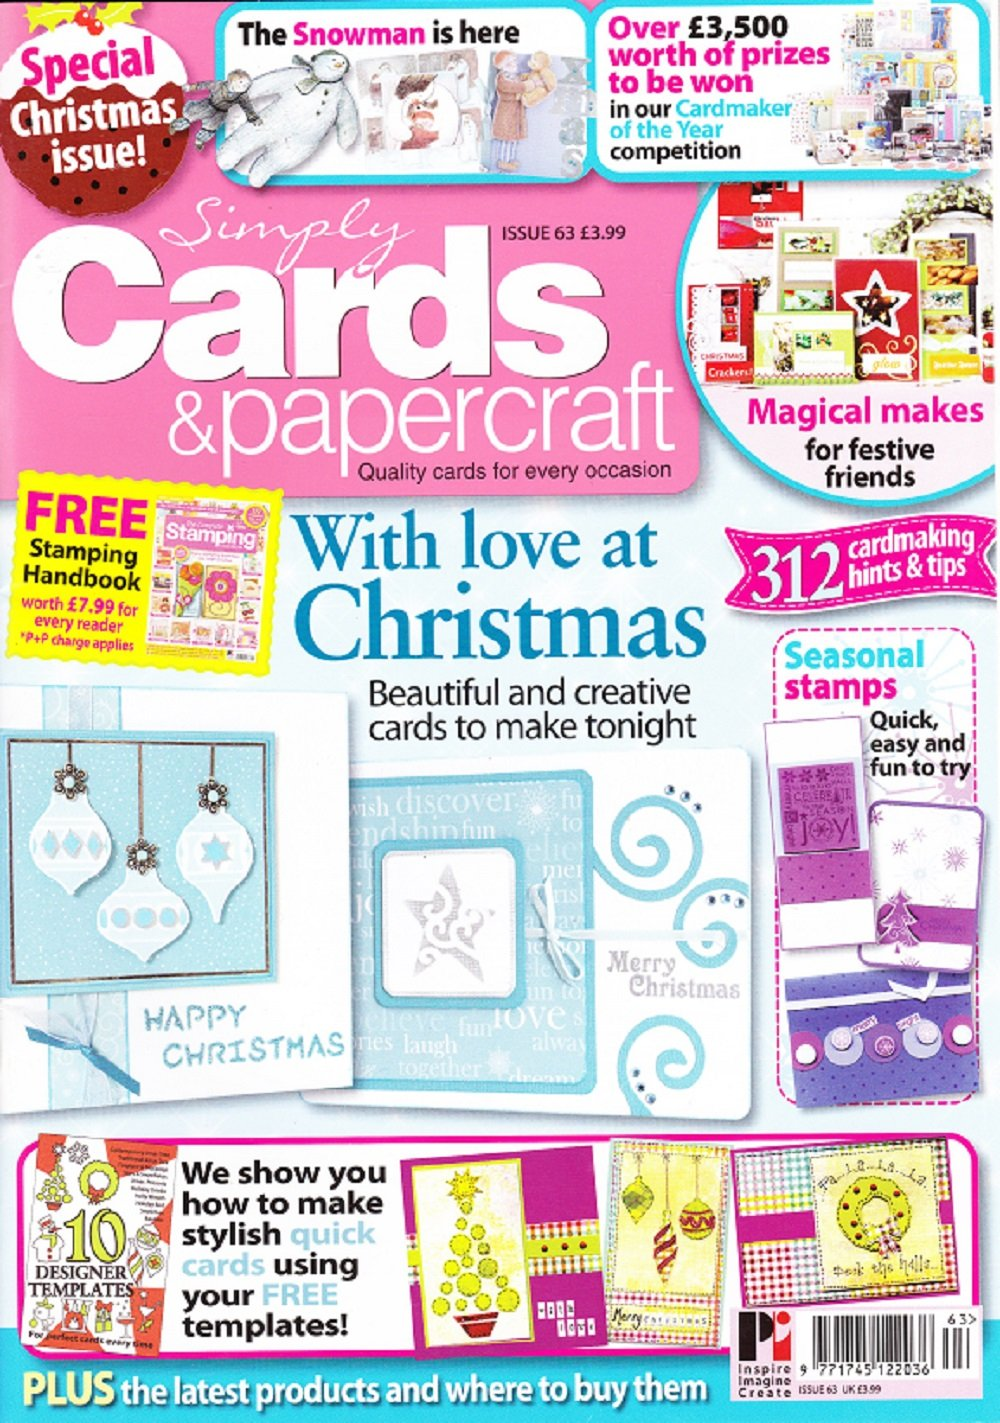 Simply Cards & Papercraft Magazine, Issue 63, Special Christmas